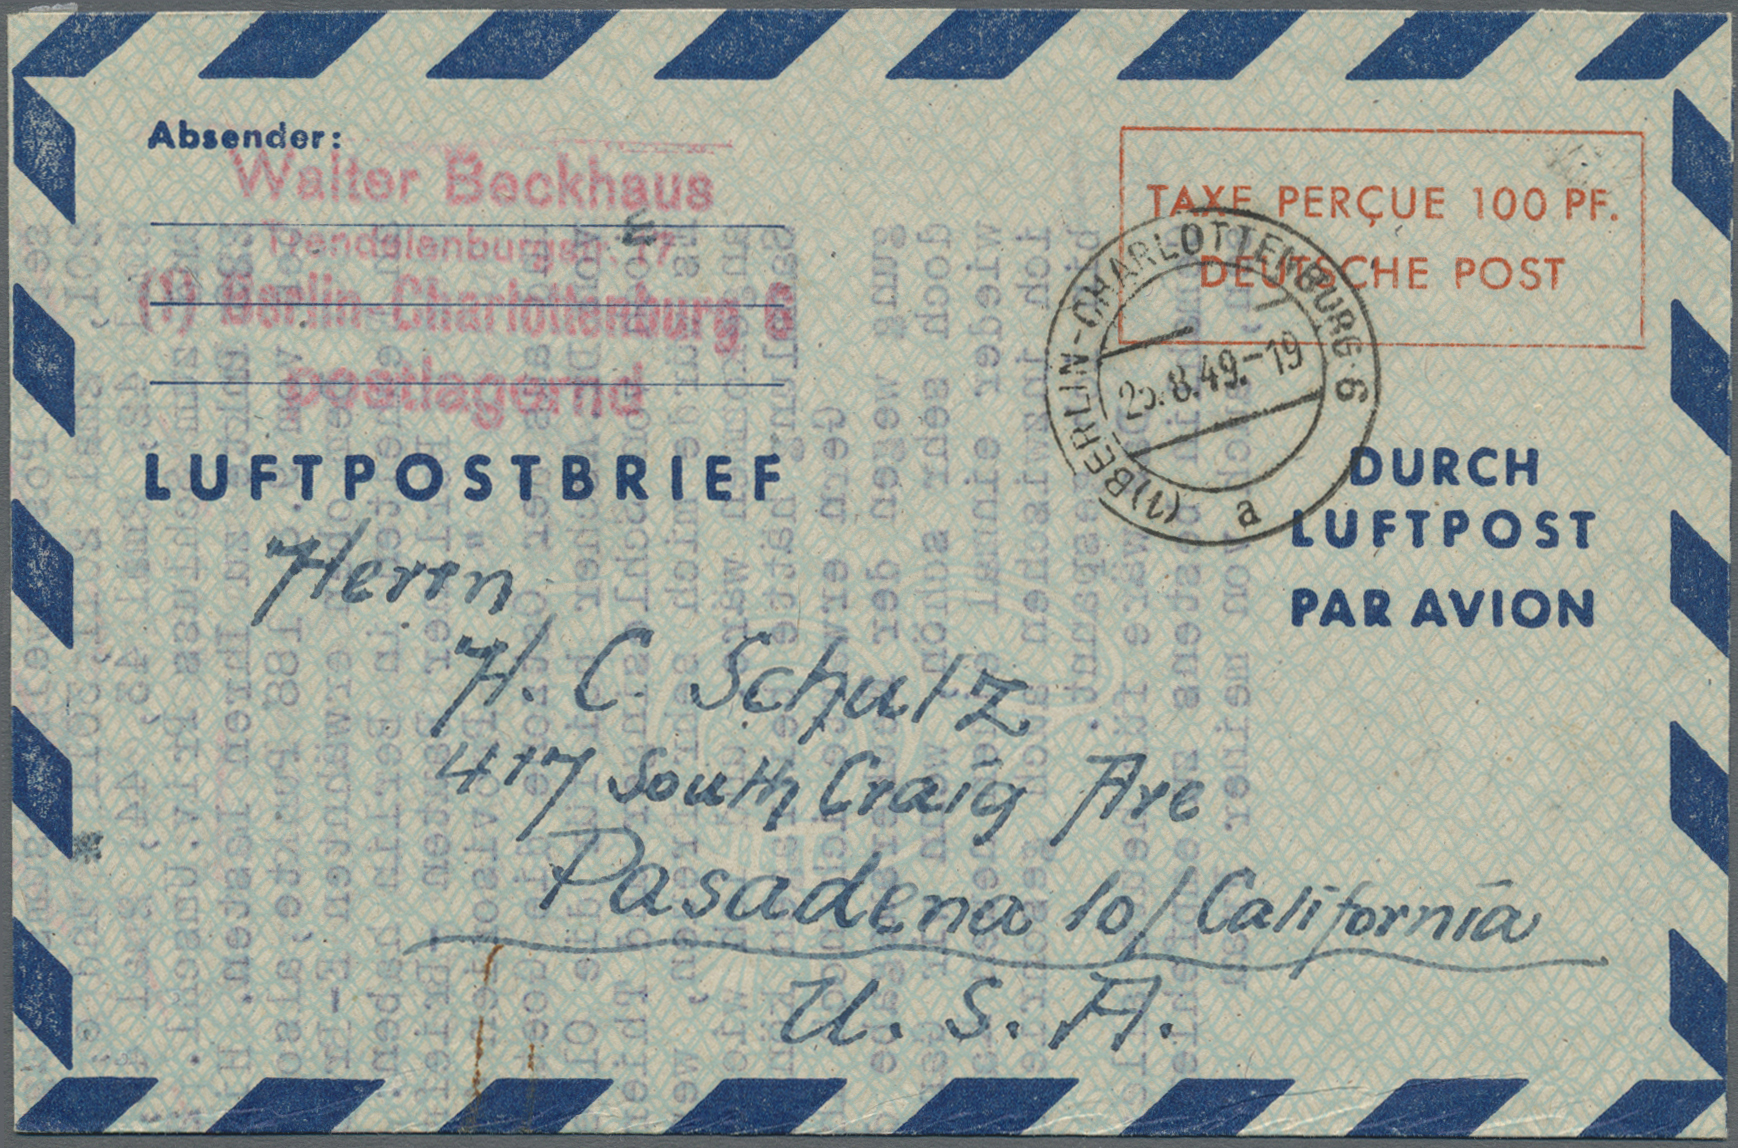 Lot 24848 - Berlin - Besonderheiten  -  Auktionshaus Christoph Gärtner GmbH & Co. KG Single lots Germany + Picture Postcards. Auction #39 Day 5